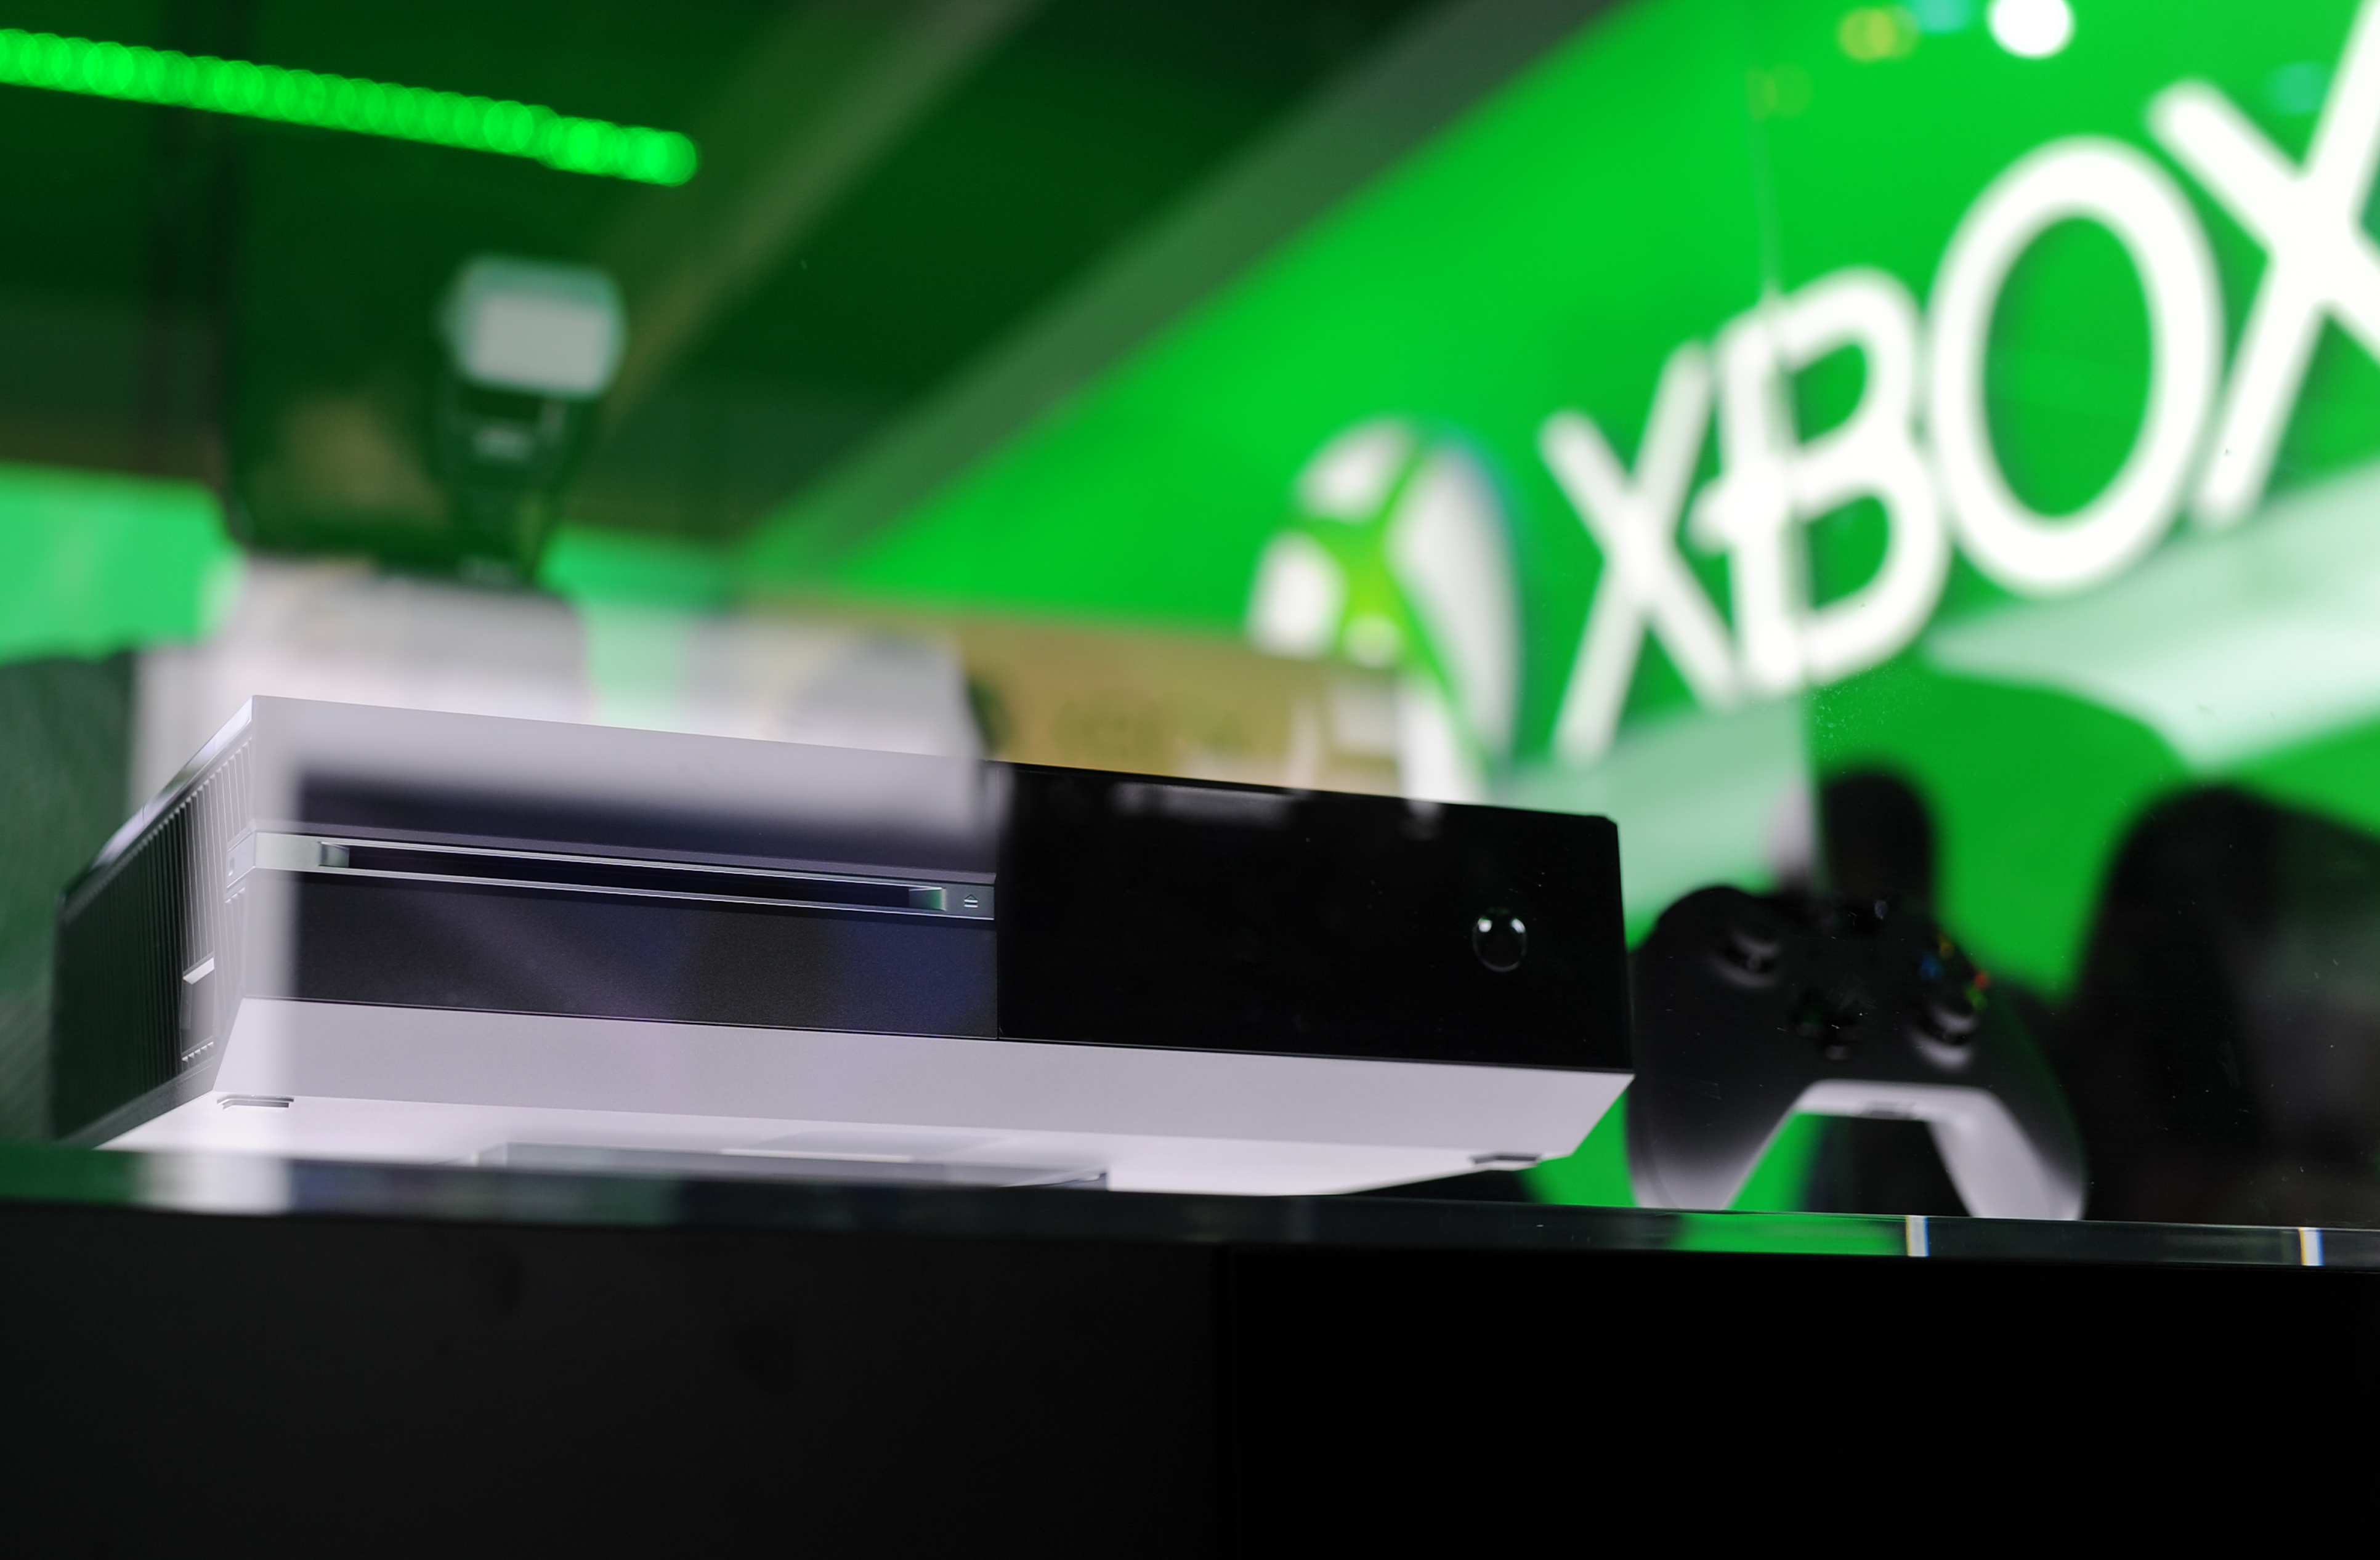 Microsoft Explains Kinect Controls for IE App on Xbox One